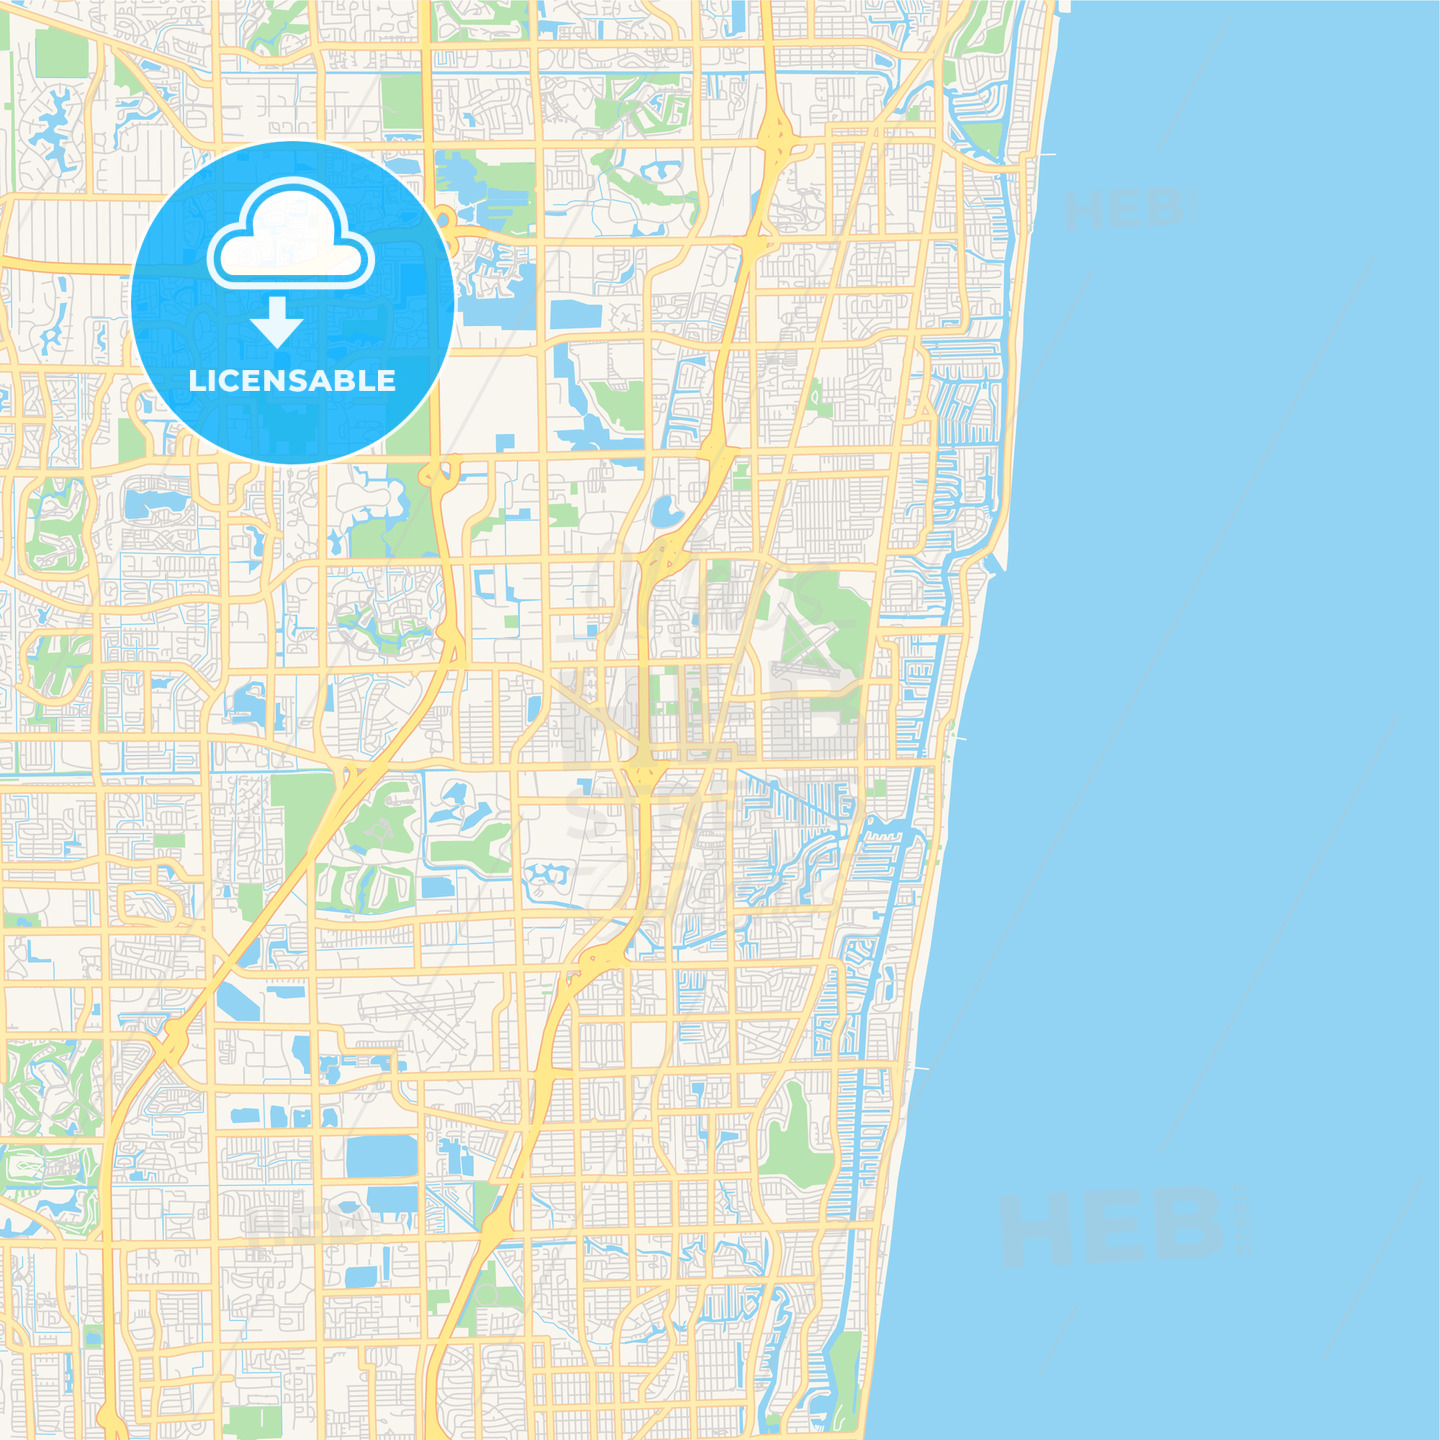 Empty vector map of Pompano Beach, Florida, USA on dinosaurs florida, sales territory maps florida, georgia florida, skyline miami beach florida, usa geography florida, butterflies florida, animals florida, maryland florida, google maps florida, united states florida, california florida, home florida,